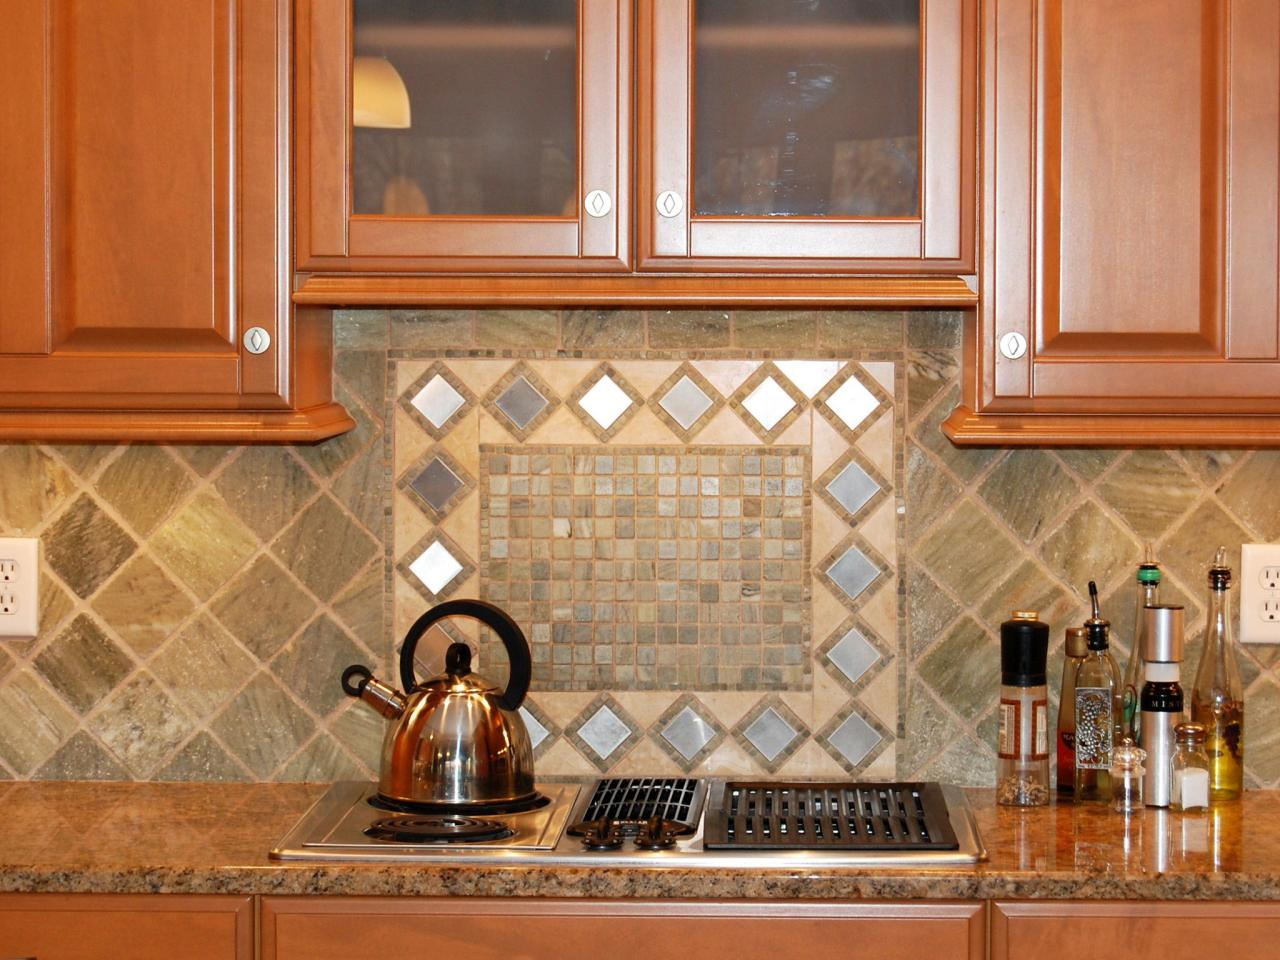 kitchen tile. mosaic tile kitchen backsplash